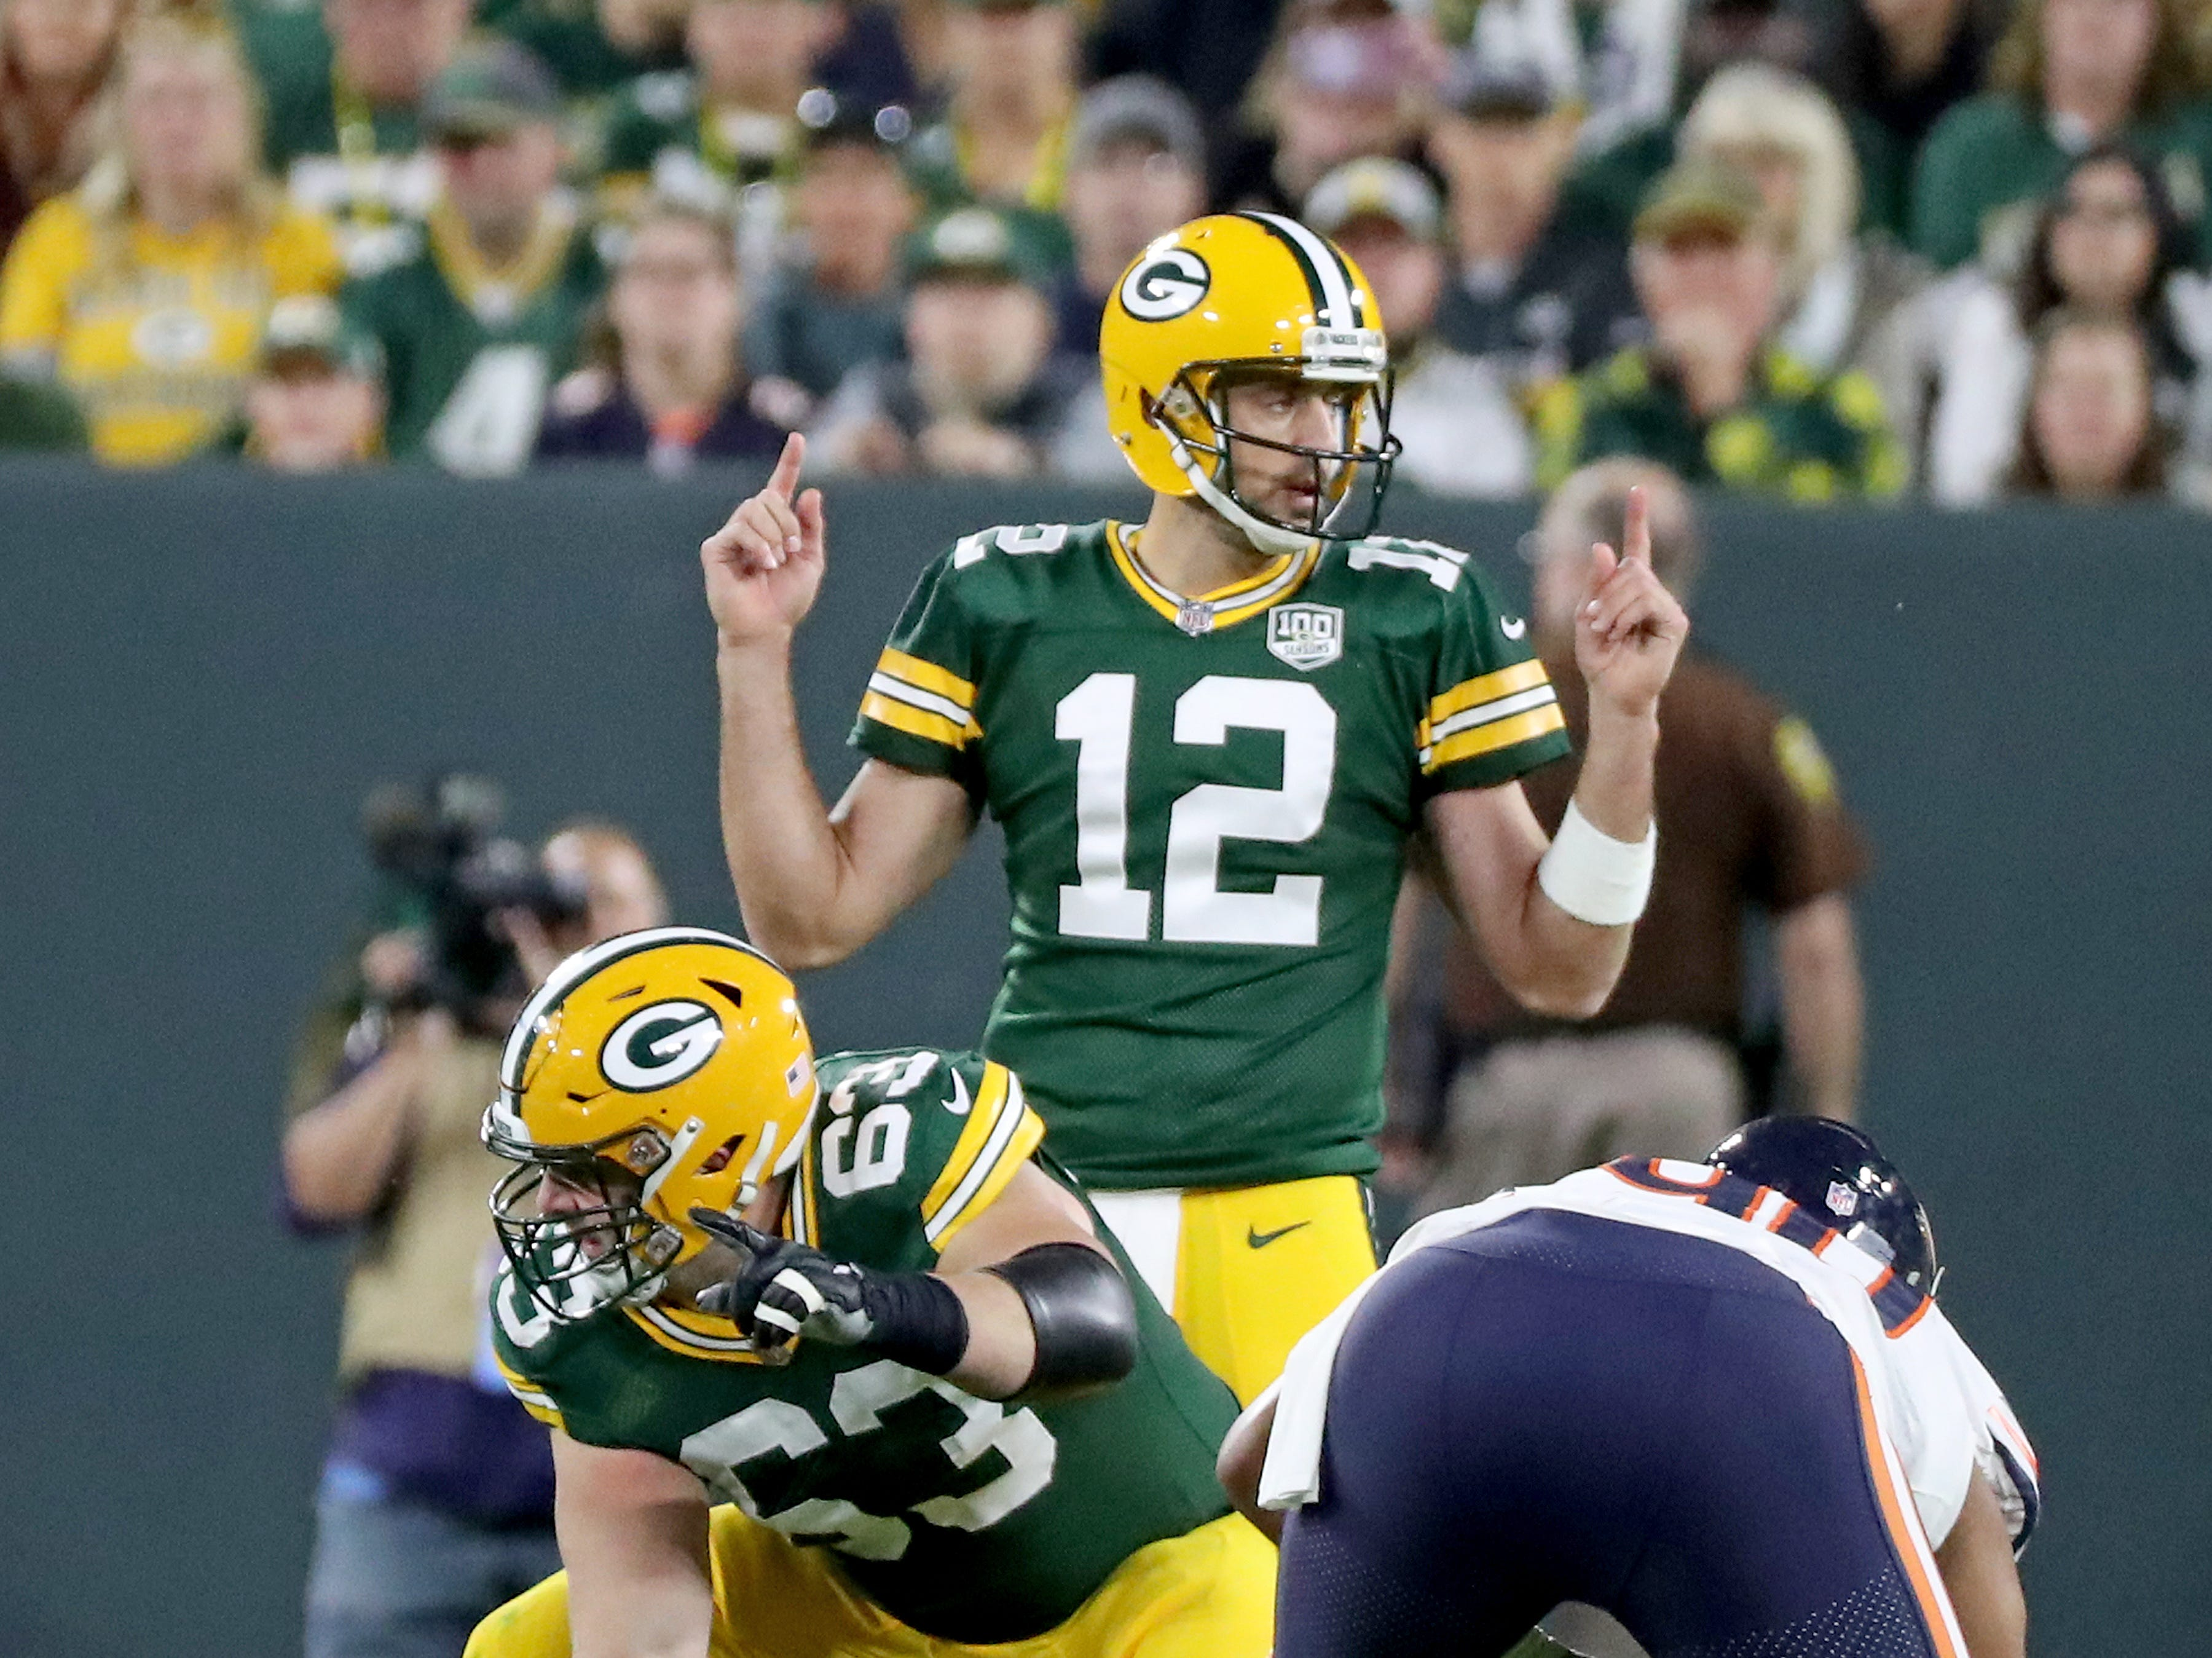 Green Bay Packers quarterback Aaron Rodgers (12) signal at the line against the Chicago Bears Sunday, September 9, 2018 at Lambeau Field in Green Bay, Wis. Jim Matthews/USA TODAY NETWORK-Wisconsin